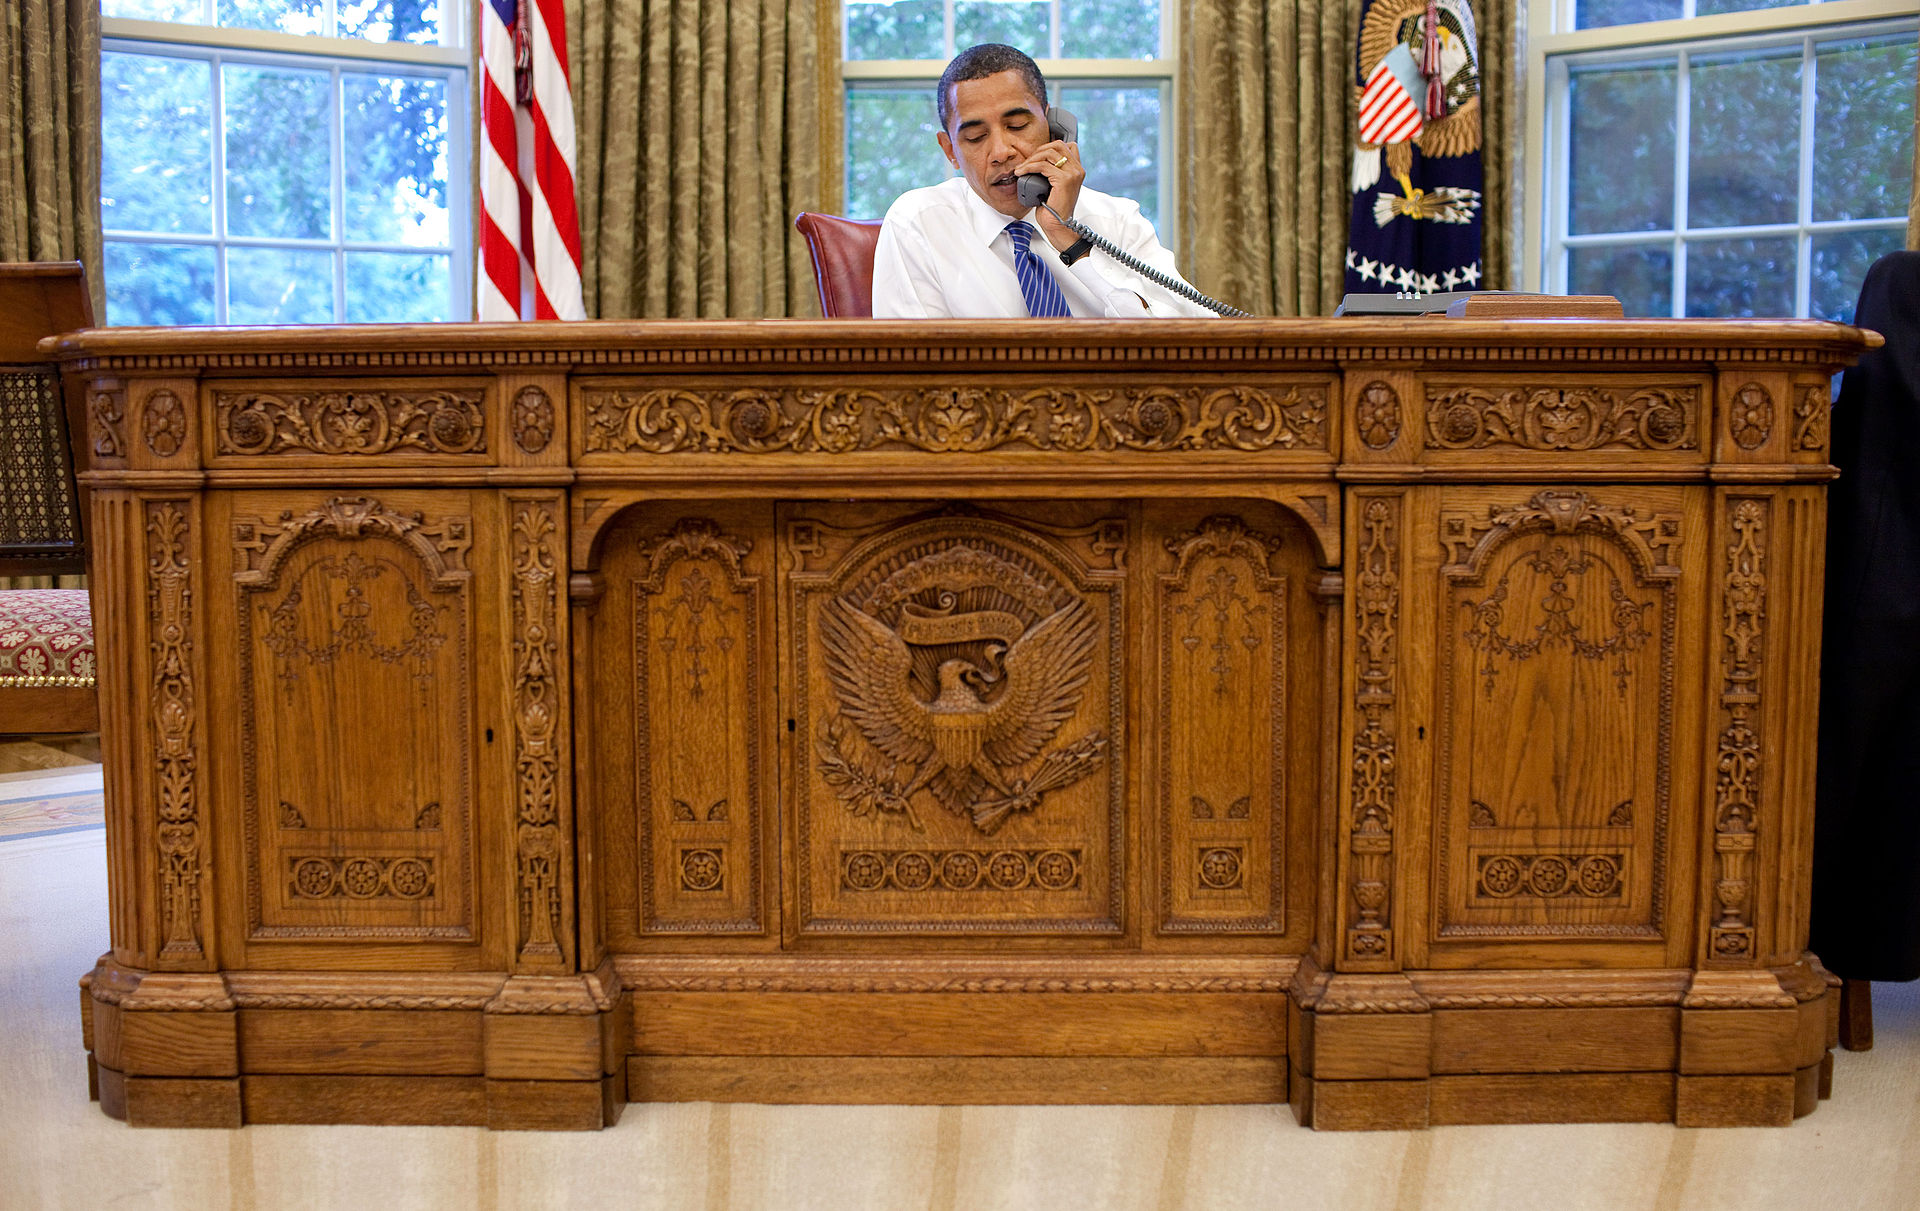 Obama Oval Office resolute desk